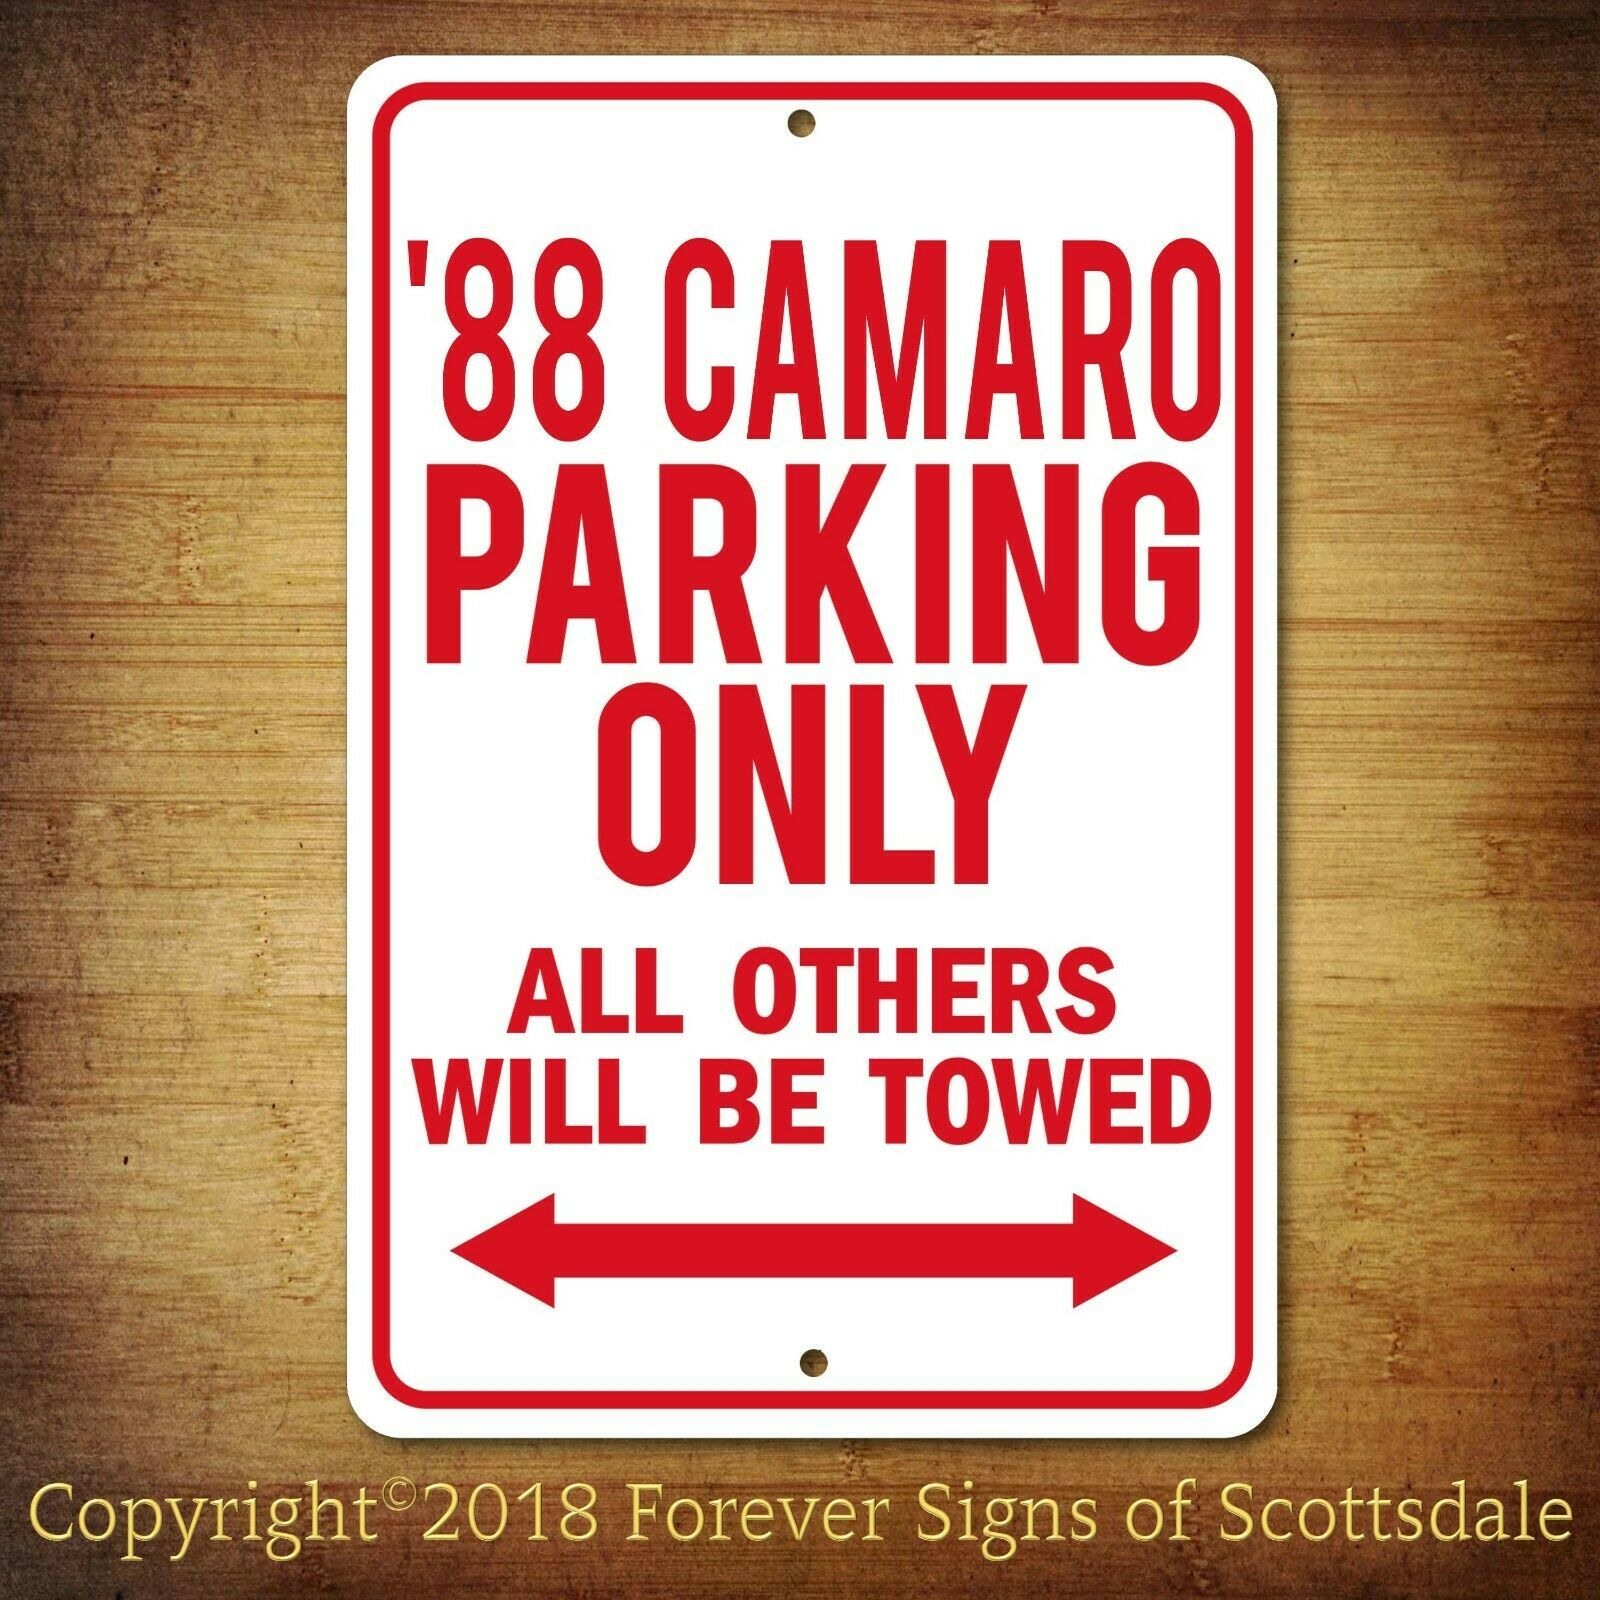 Primary image for 1988 Chevrolet Camaro Parking Only Security Aluminum Sign